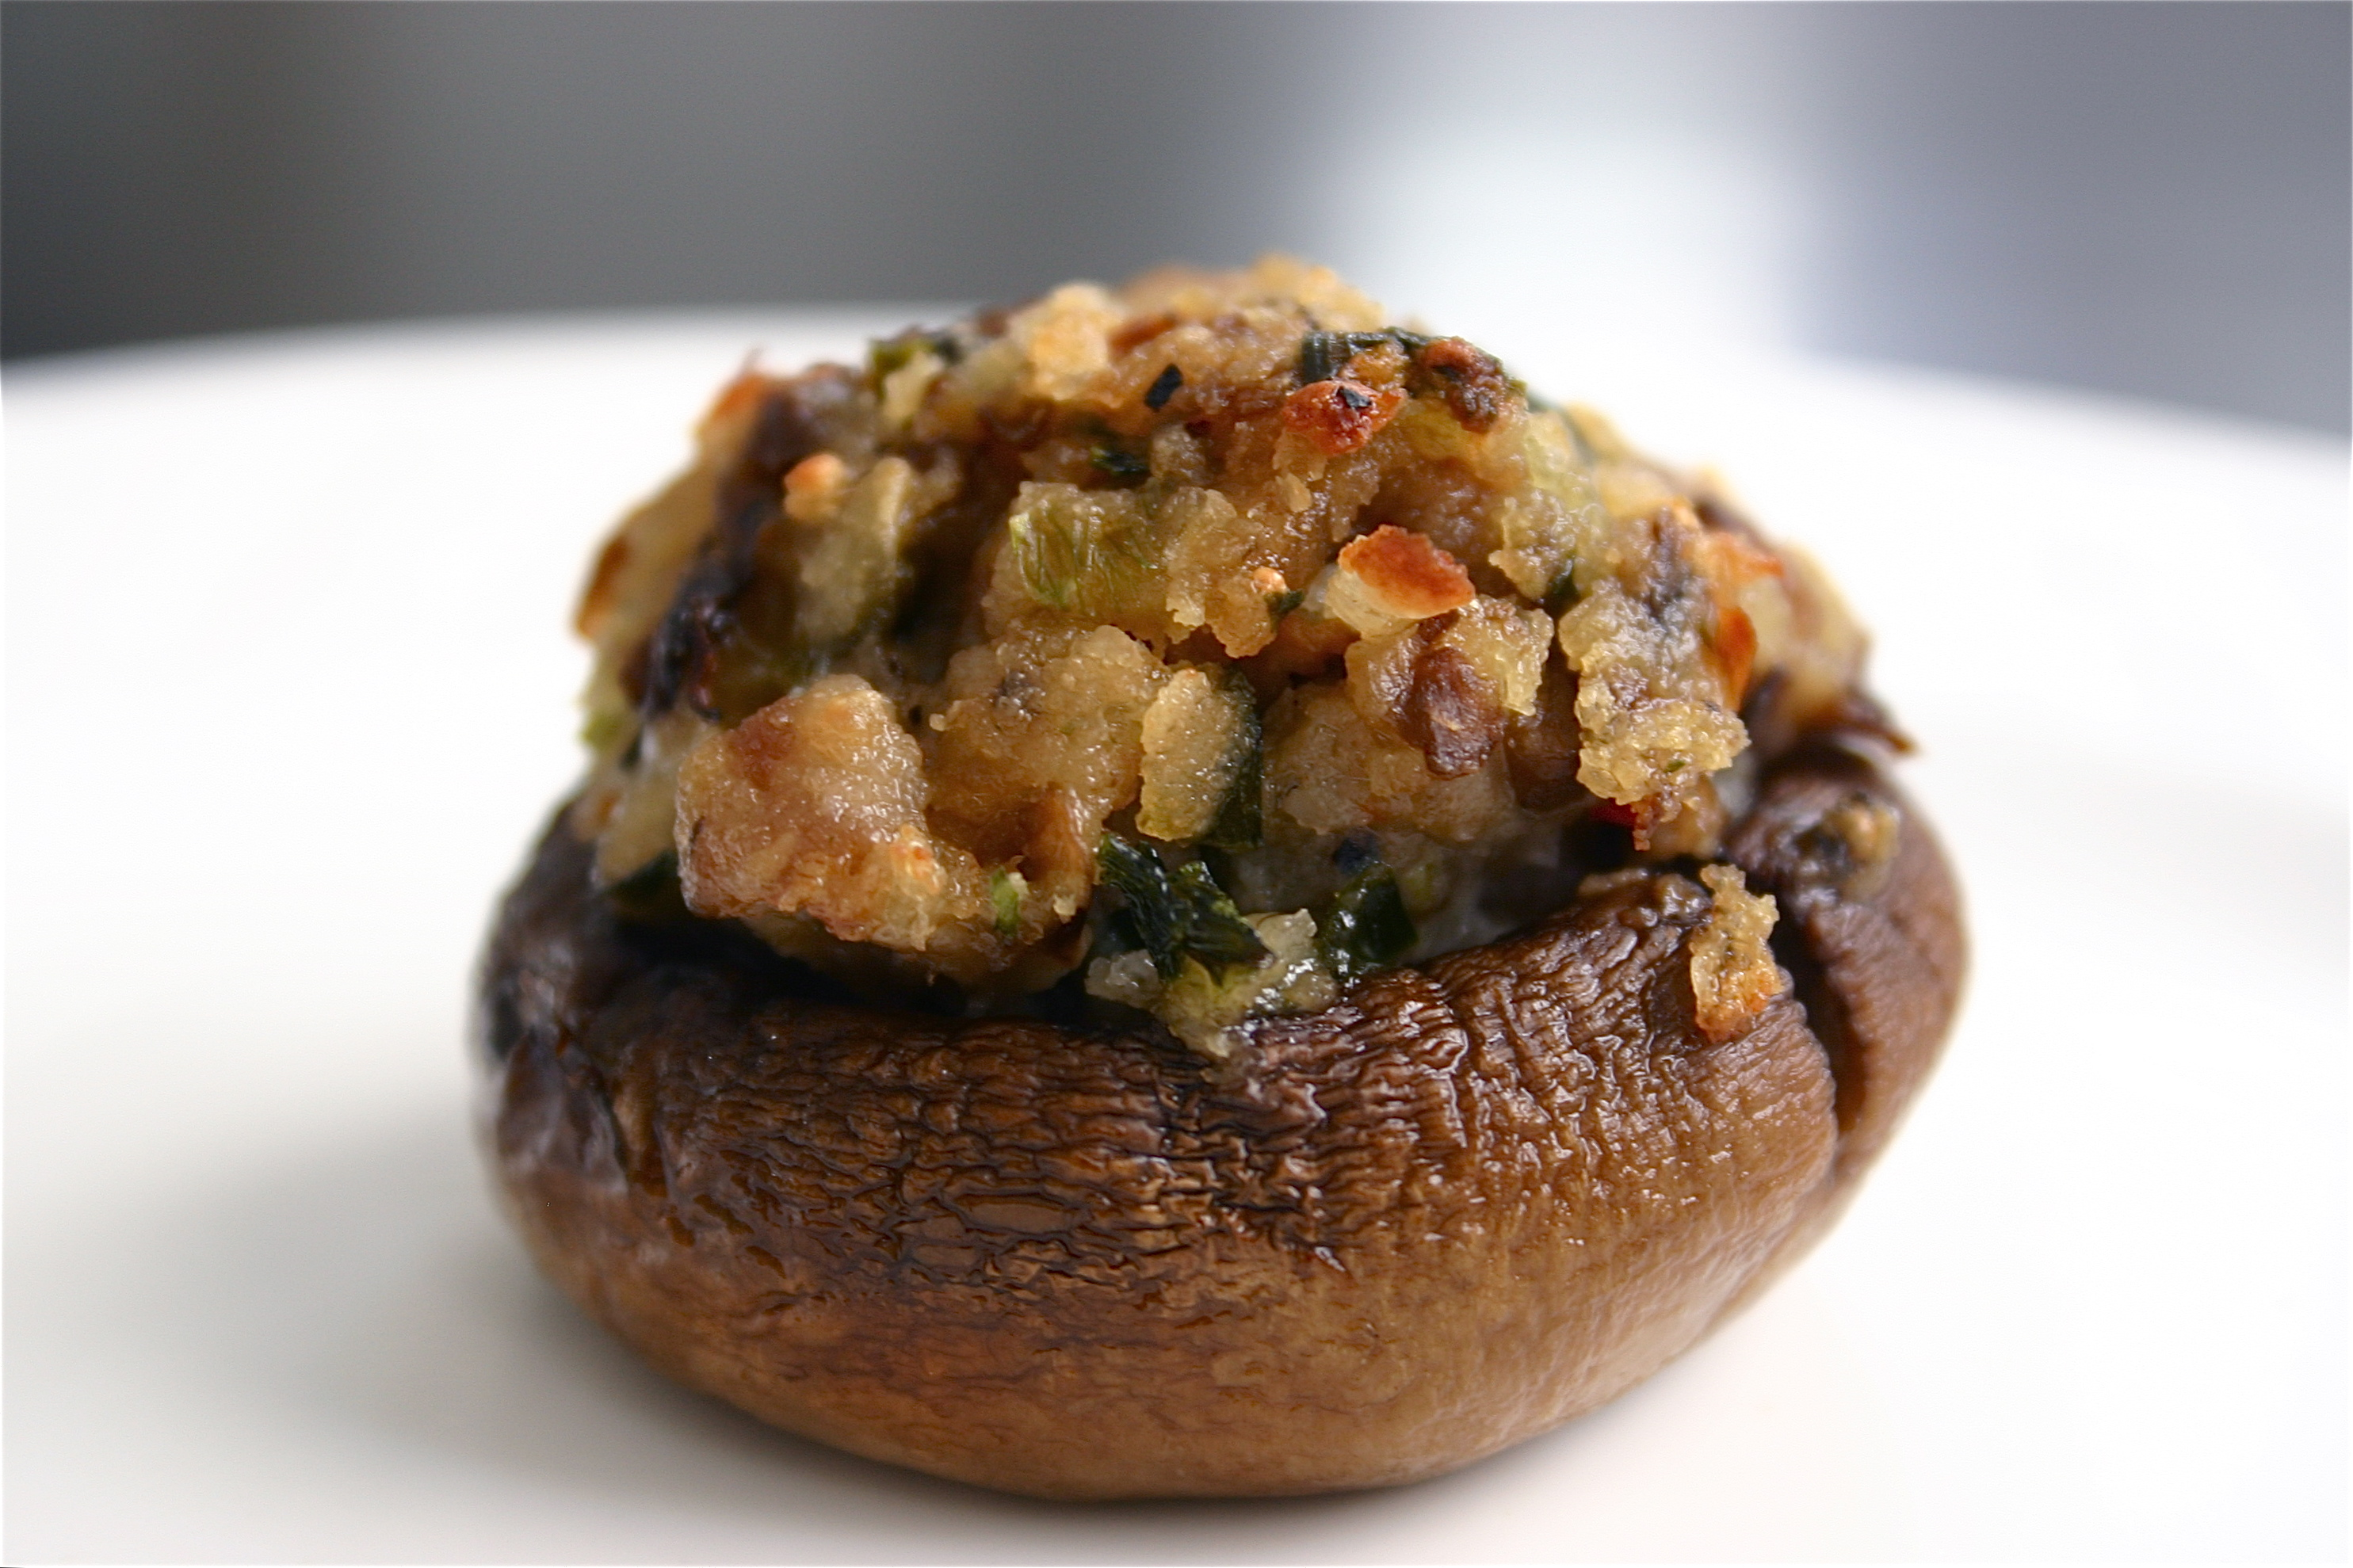 The Best Stuffed Mushrooms I've Ever Had - Recipegreat.com